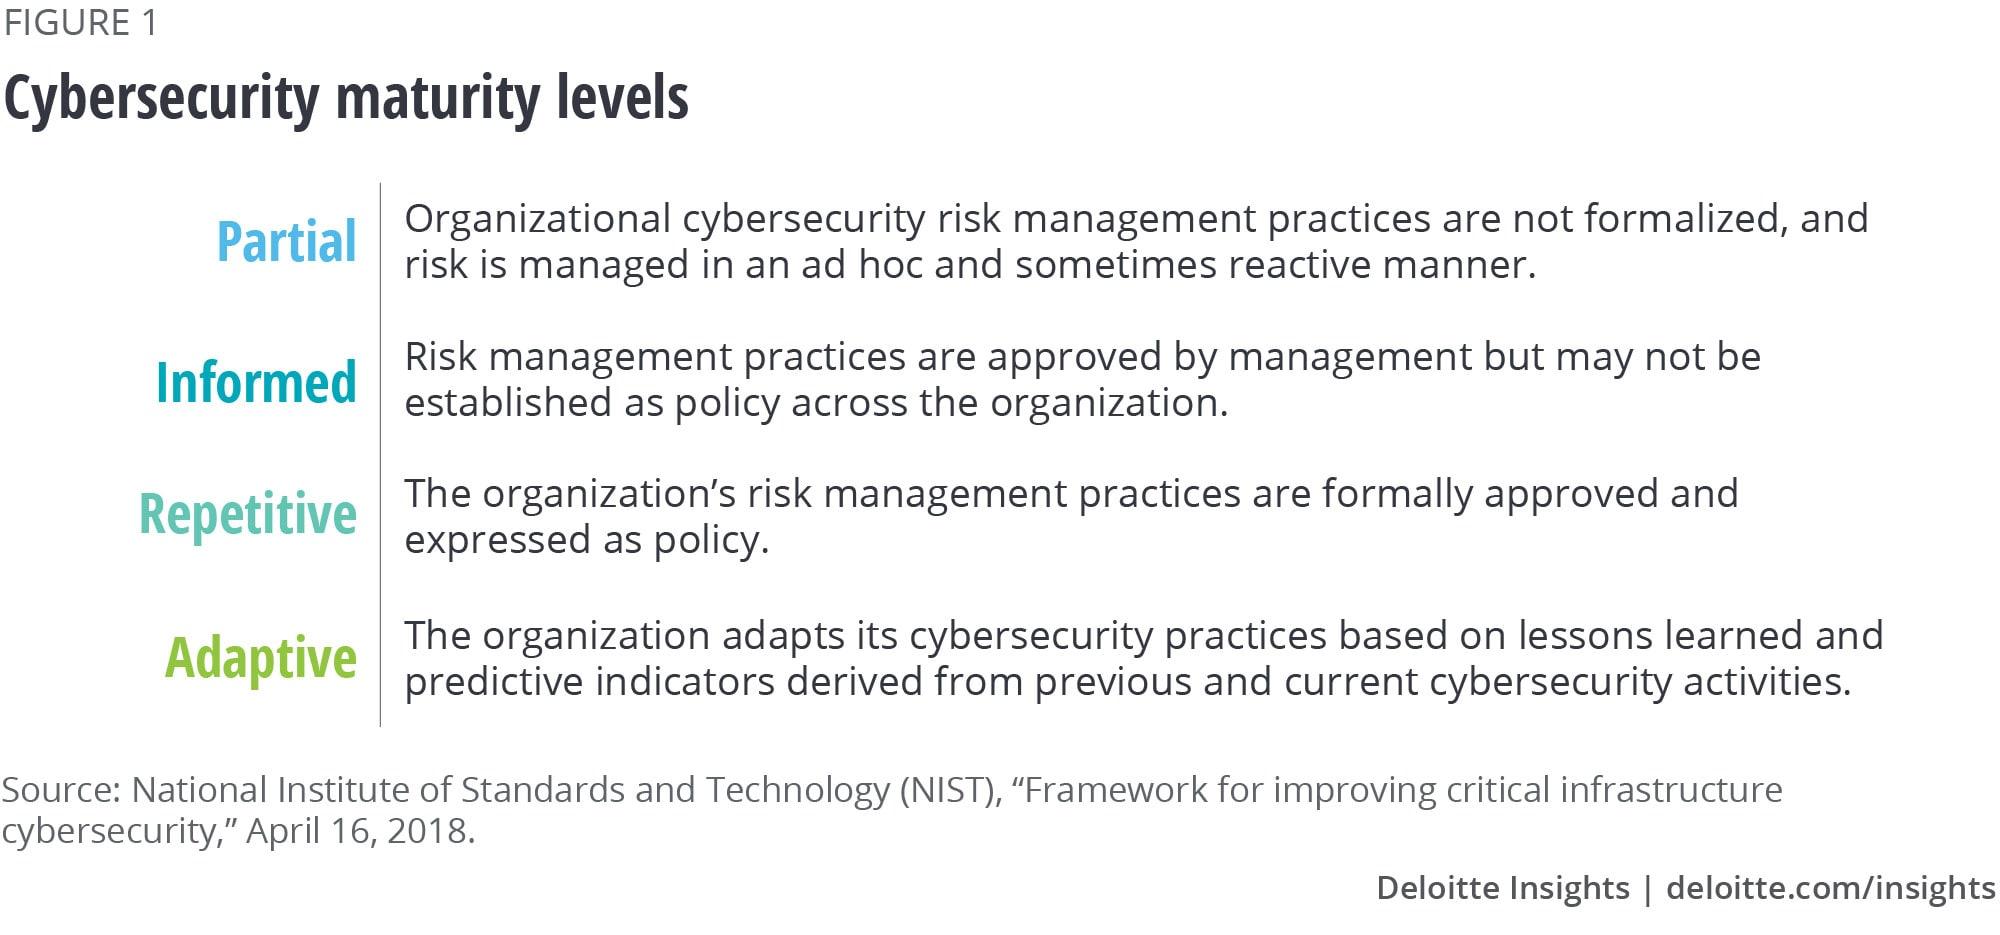 Cybersecurity maturity levels